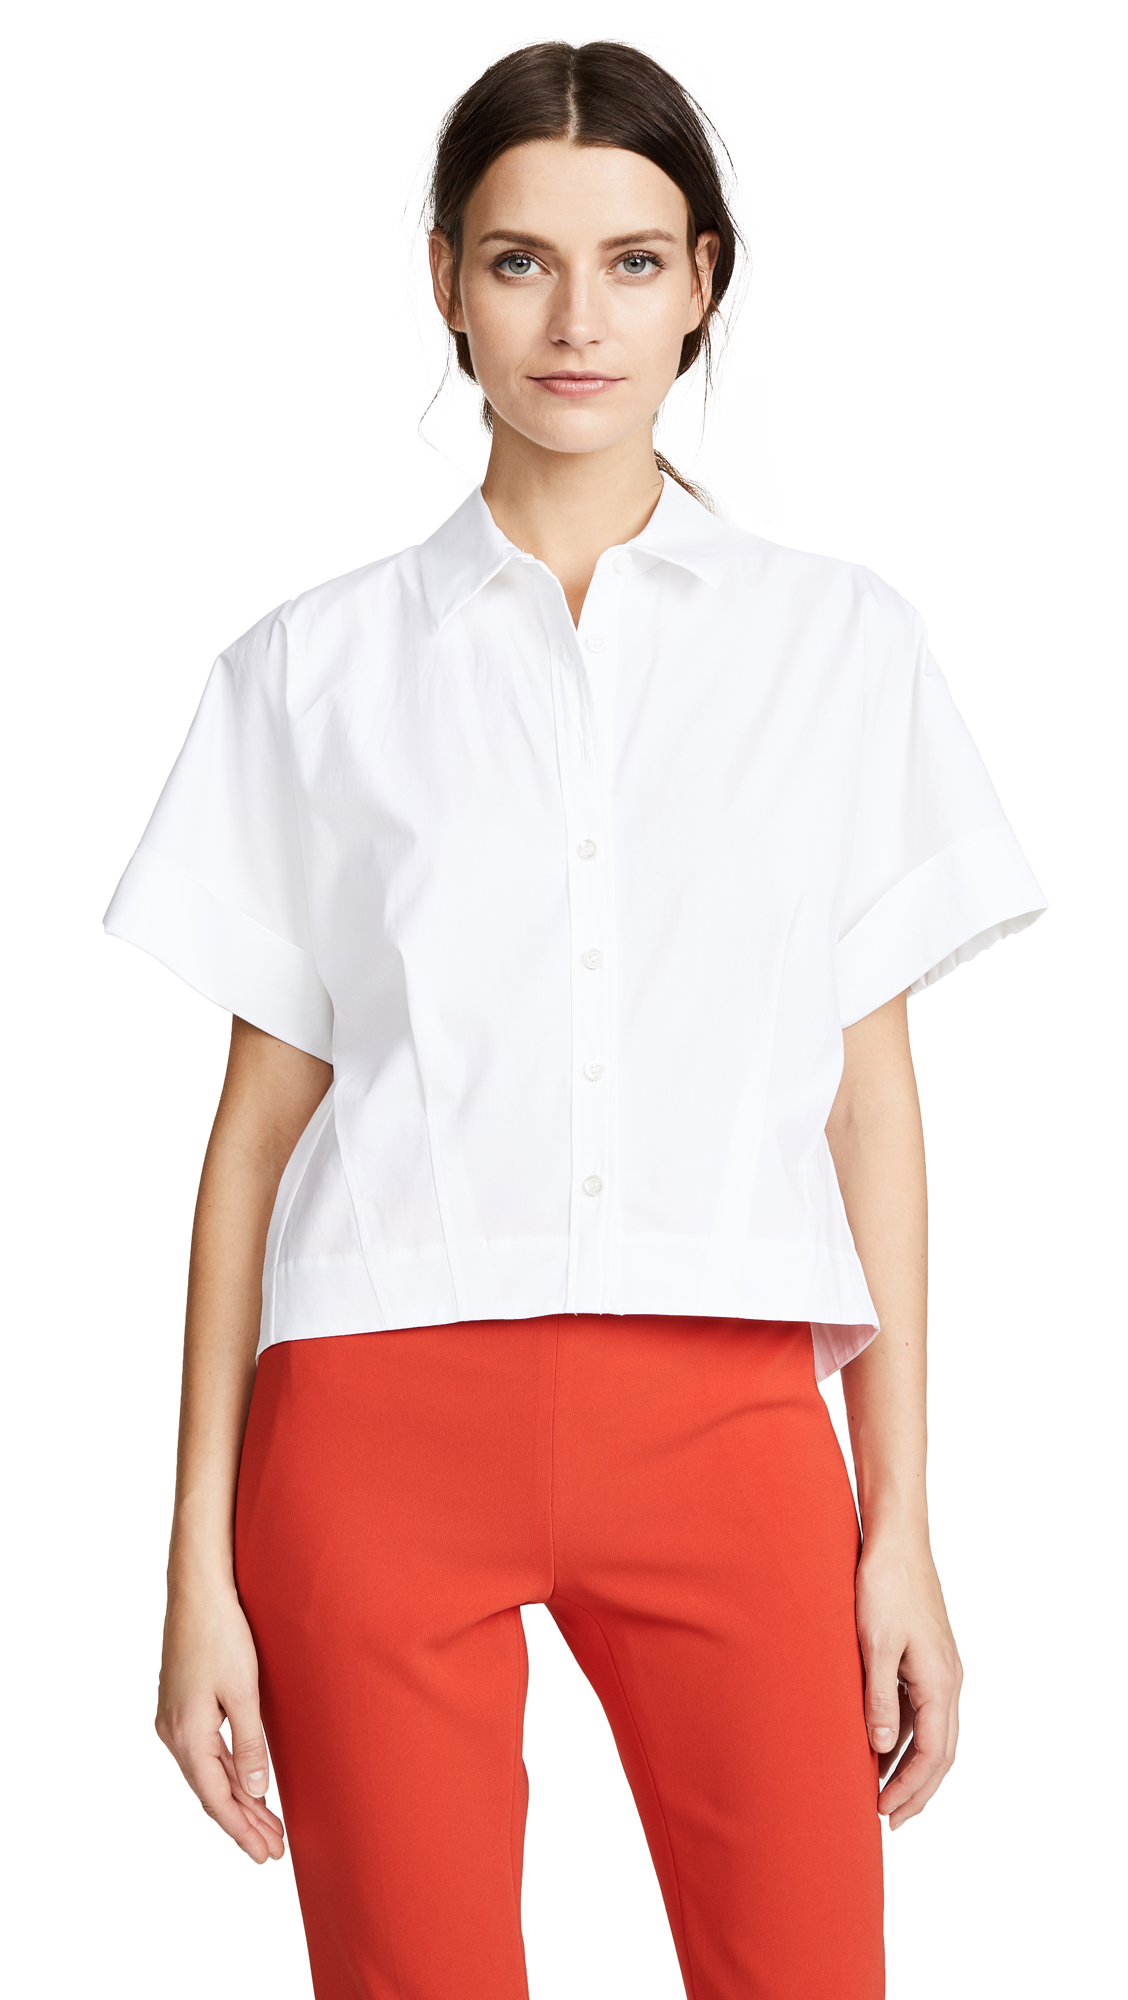 Theory Cropped Button Down Shirt - White